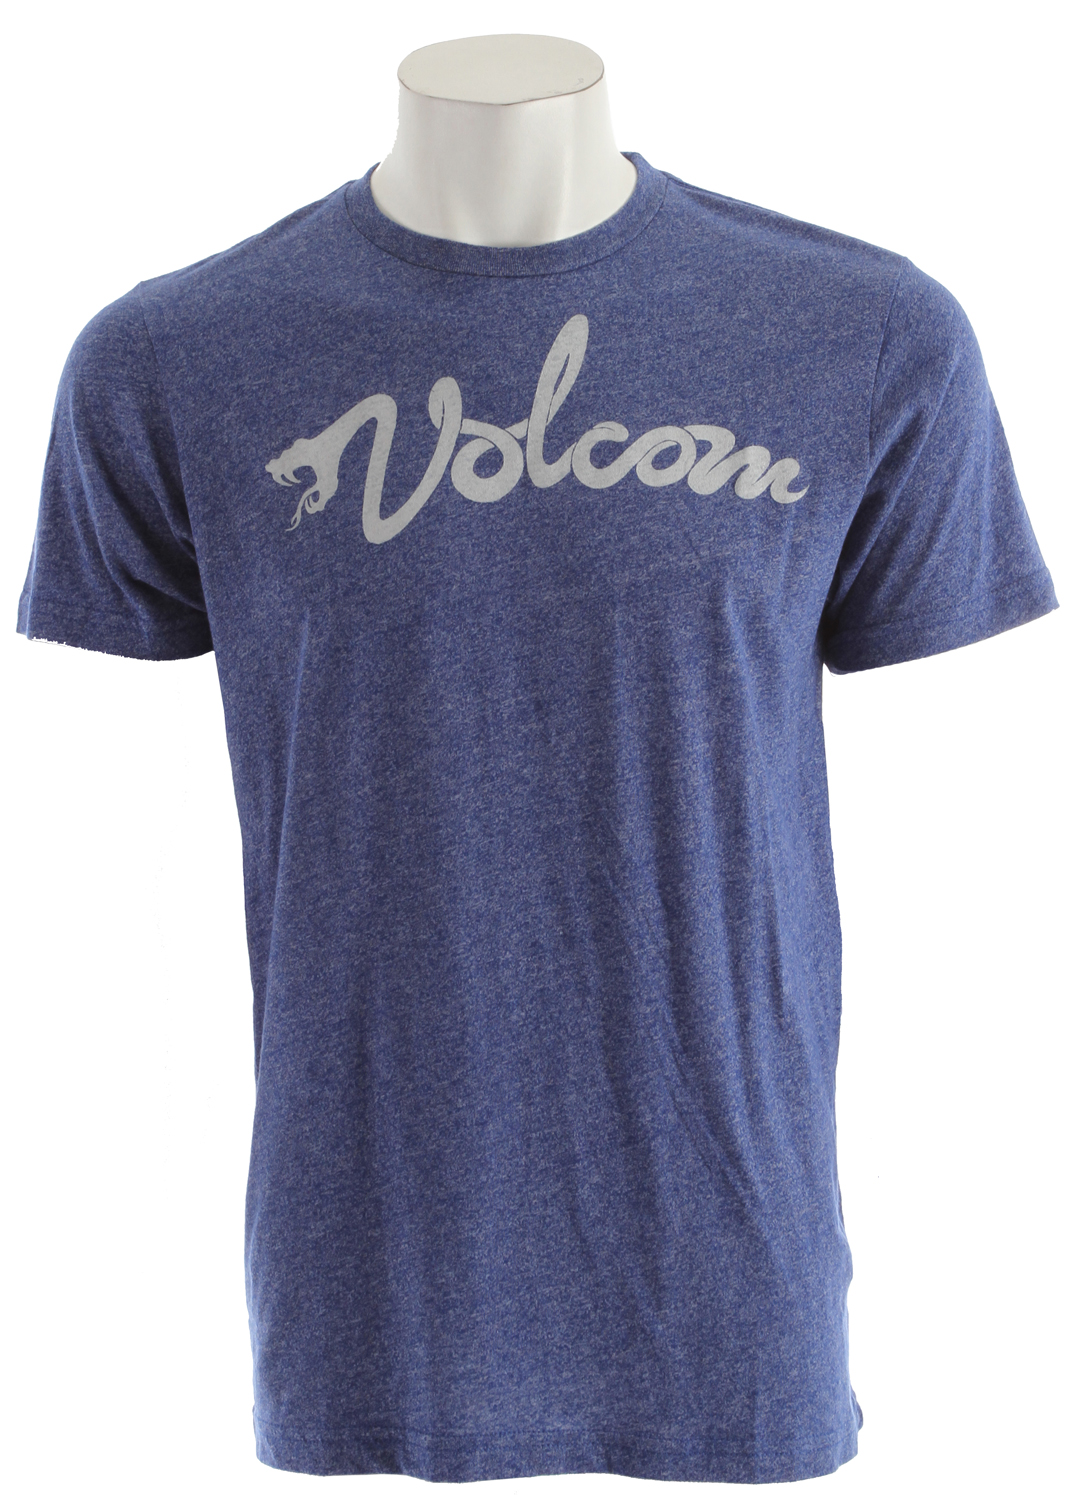 Surf Key Features of the Volcom White Script T-Shirt: Basic screenprint Modern fit 50% cotton/50% polyester - $25.00